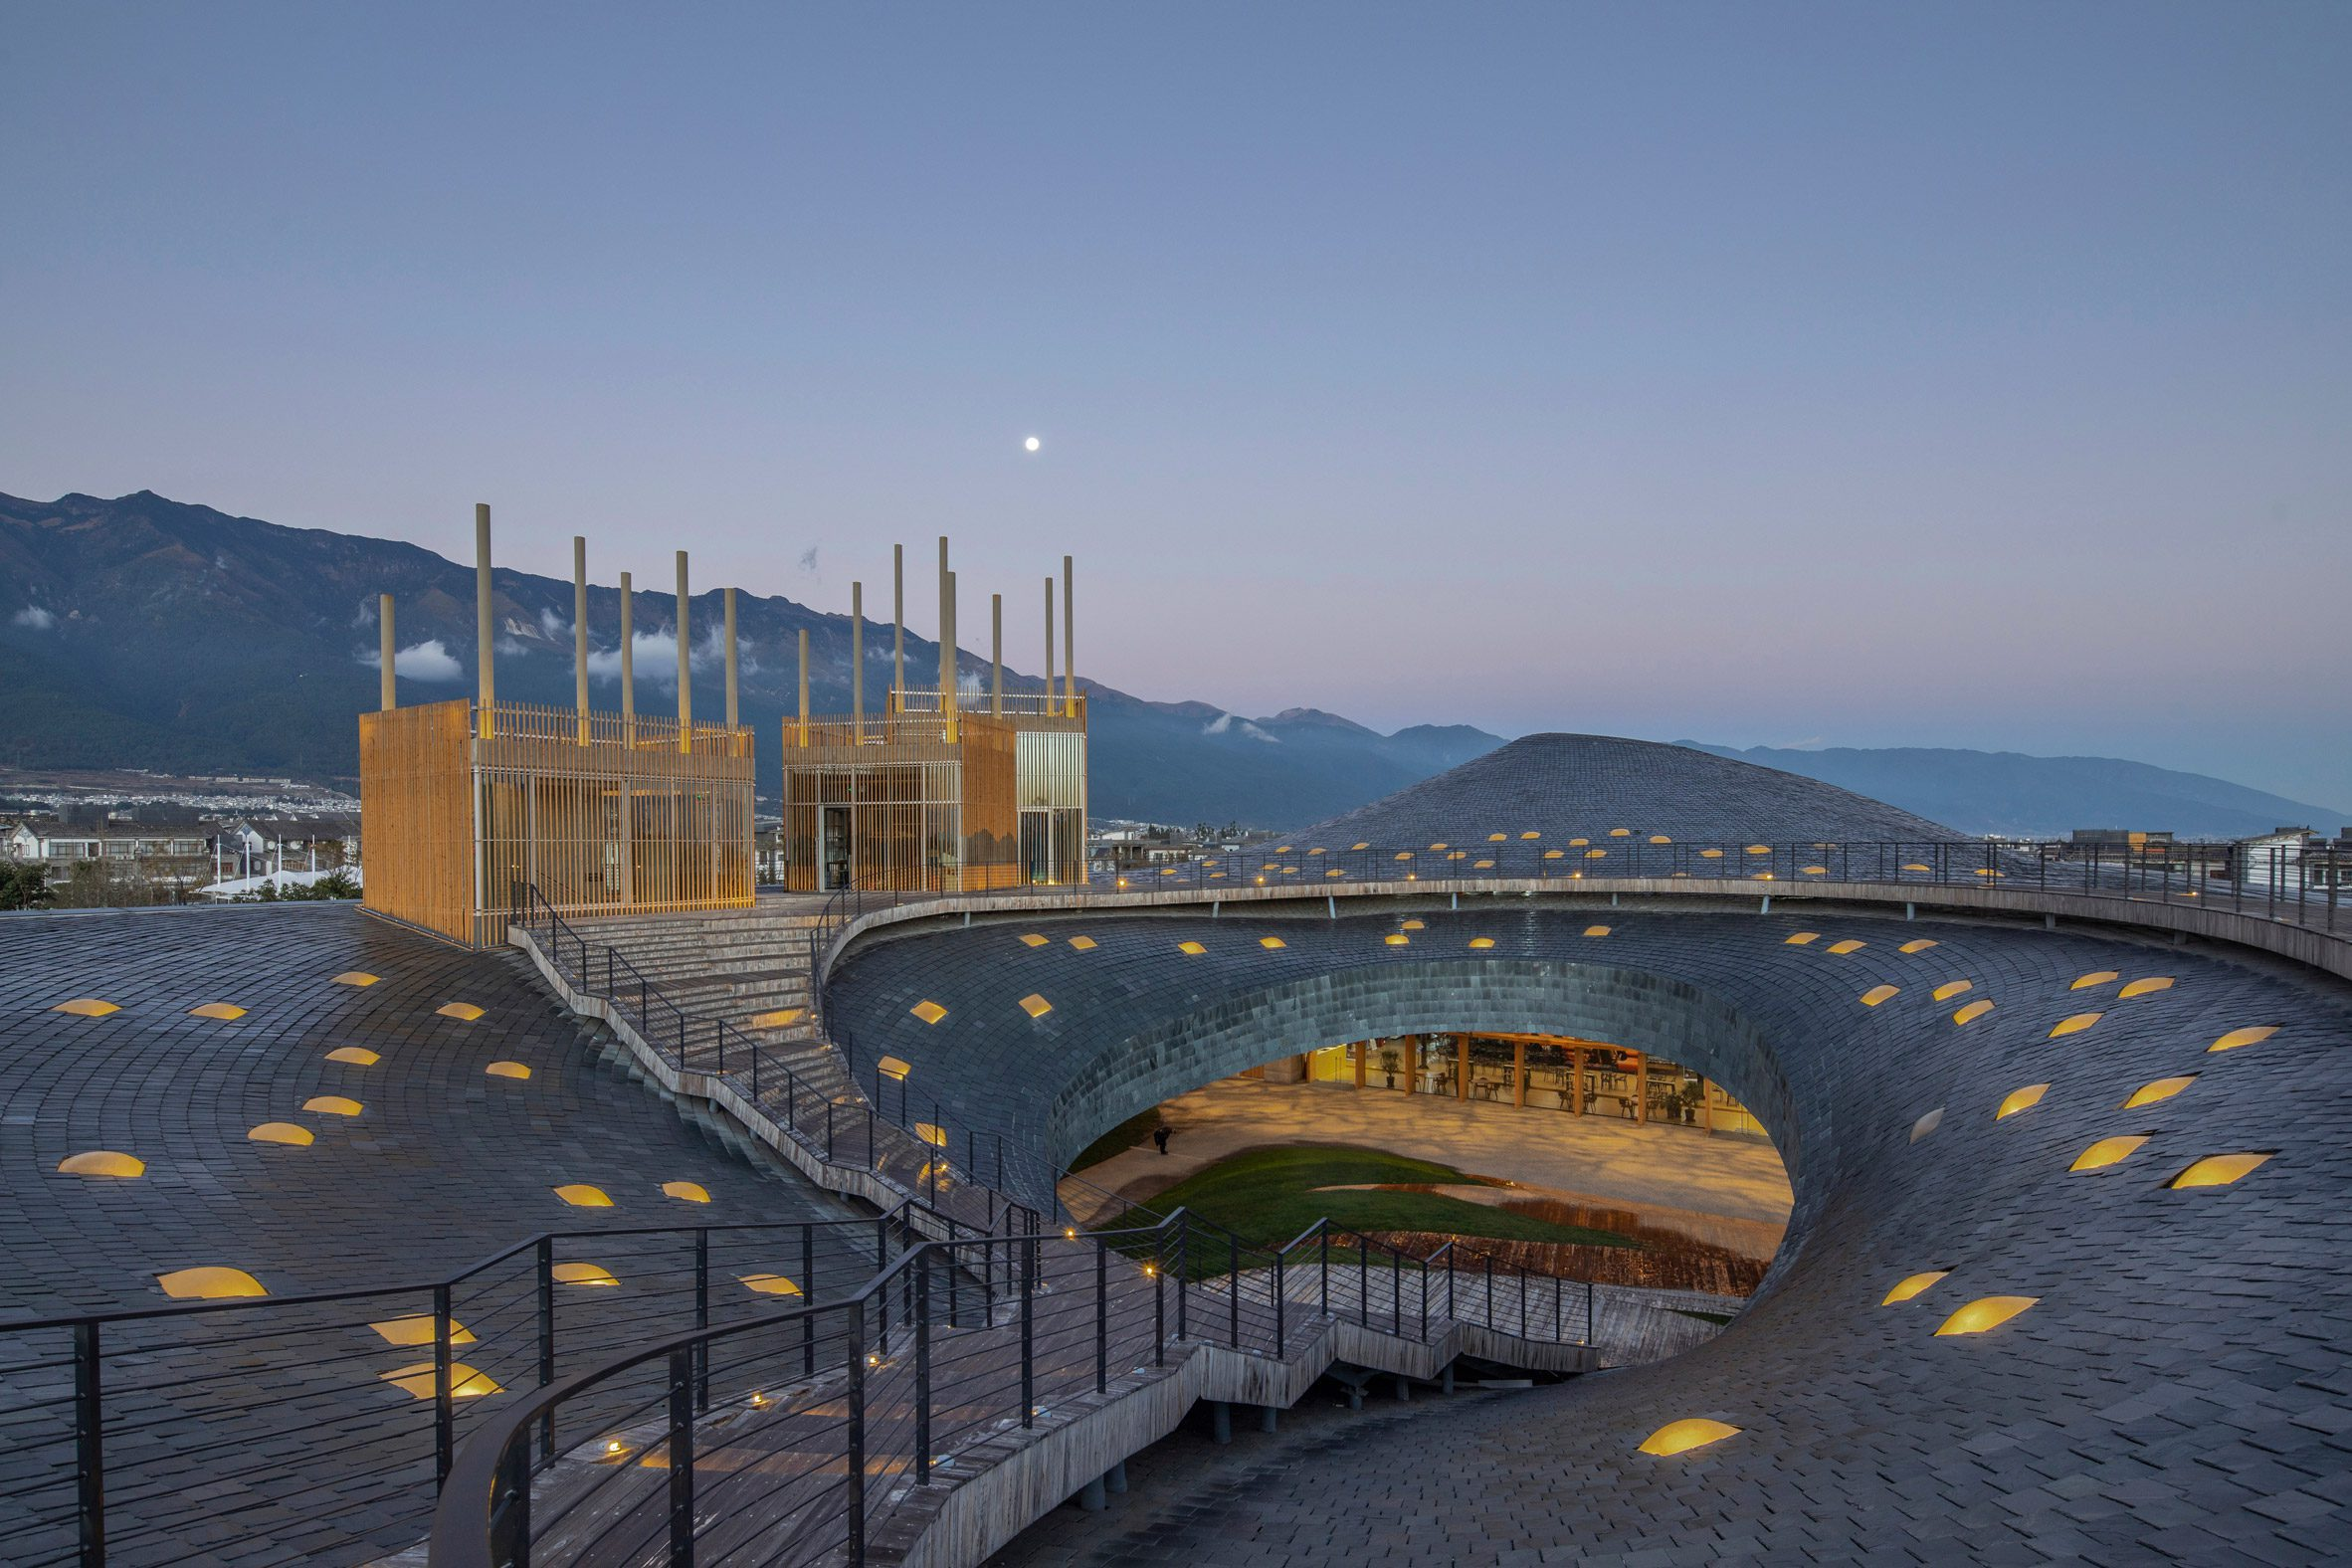 Yang Liping Performing Arts Center has an organic form informed by the mountains